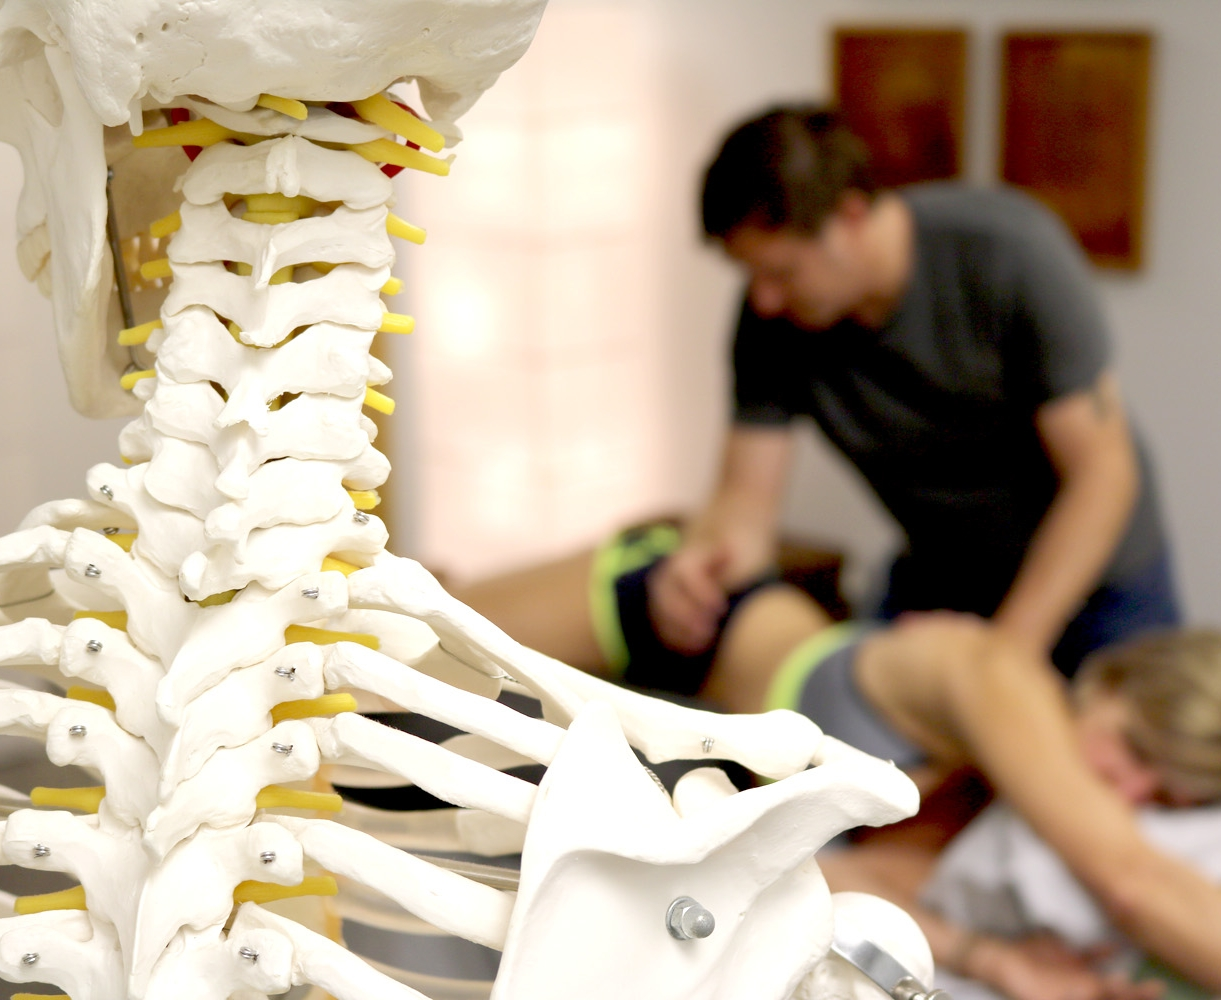 Rob Miller during a Rolfing session with a client